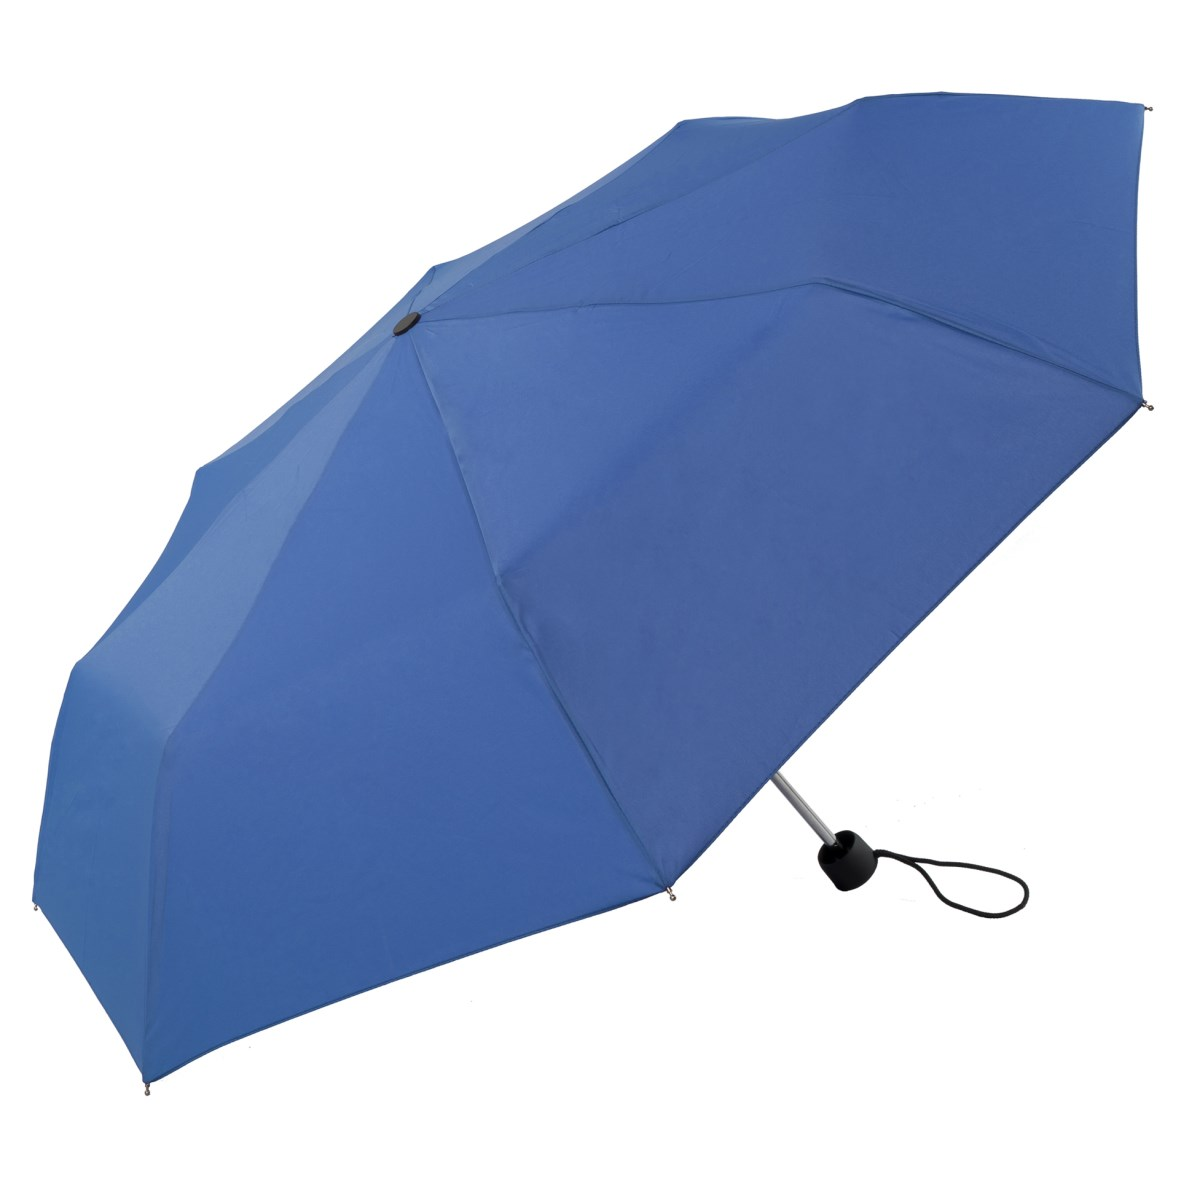 Unisex Bright & Colourful Blue Compact Umbrella (31704)